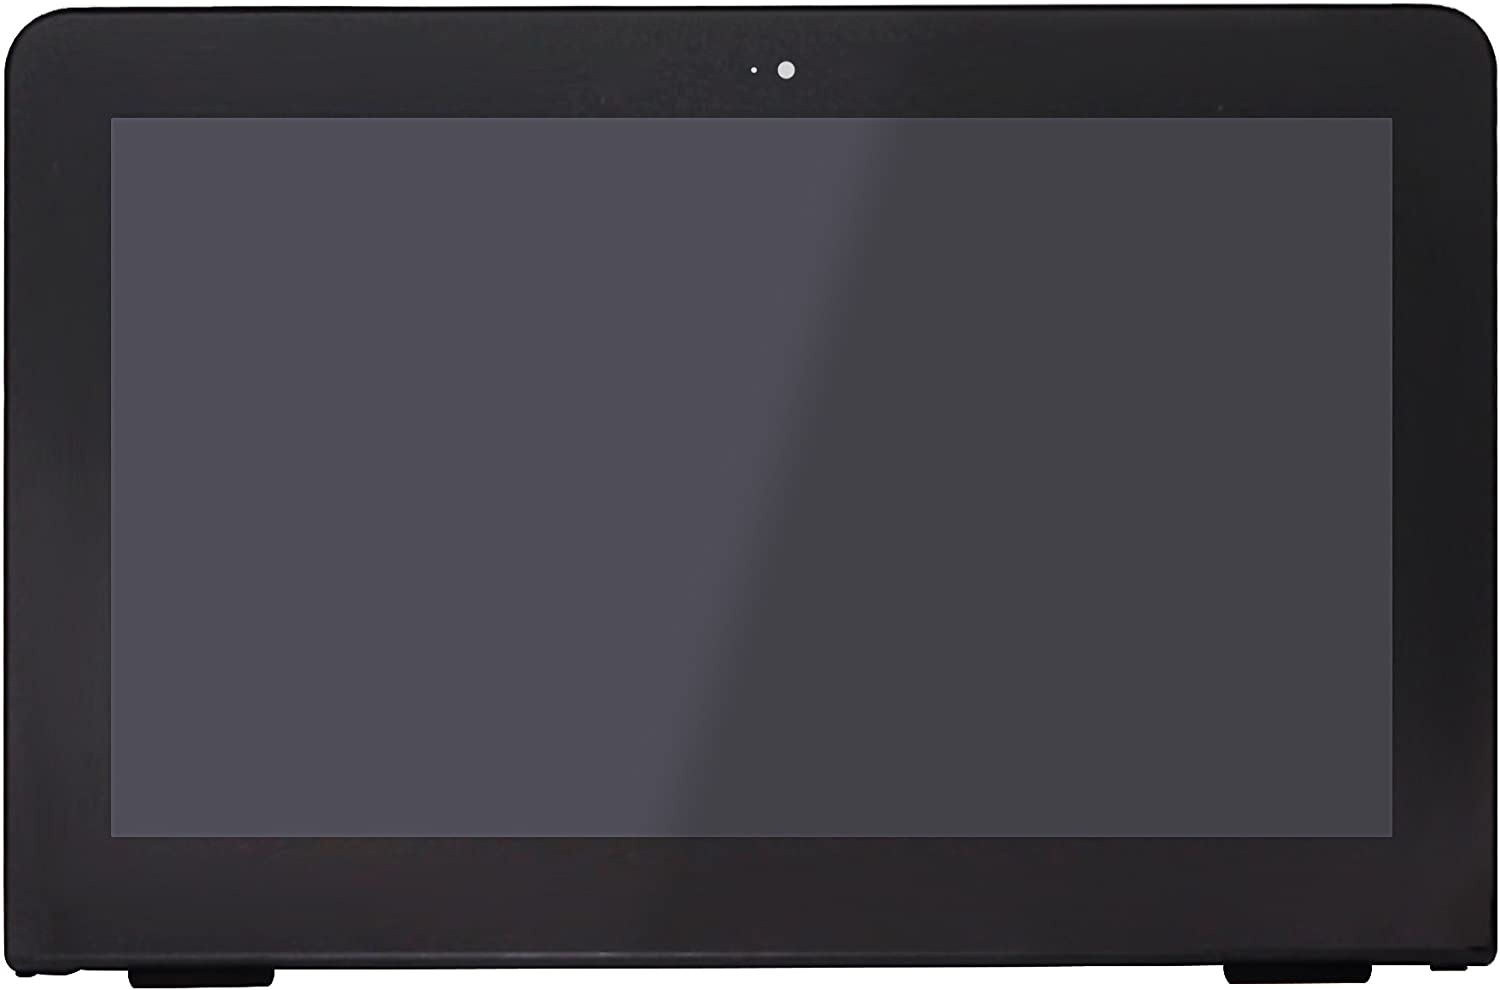 LCDOLED Replacement 11.6 inches 1366x768 HD IPS LED LCD Display Touch Screen Digitizer Assembly Bezel with Controller Board for HP Pavilion X360 M1-U M1-U000 M1-U001DX (1D Webcam Holes)